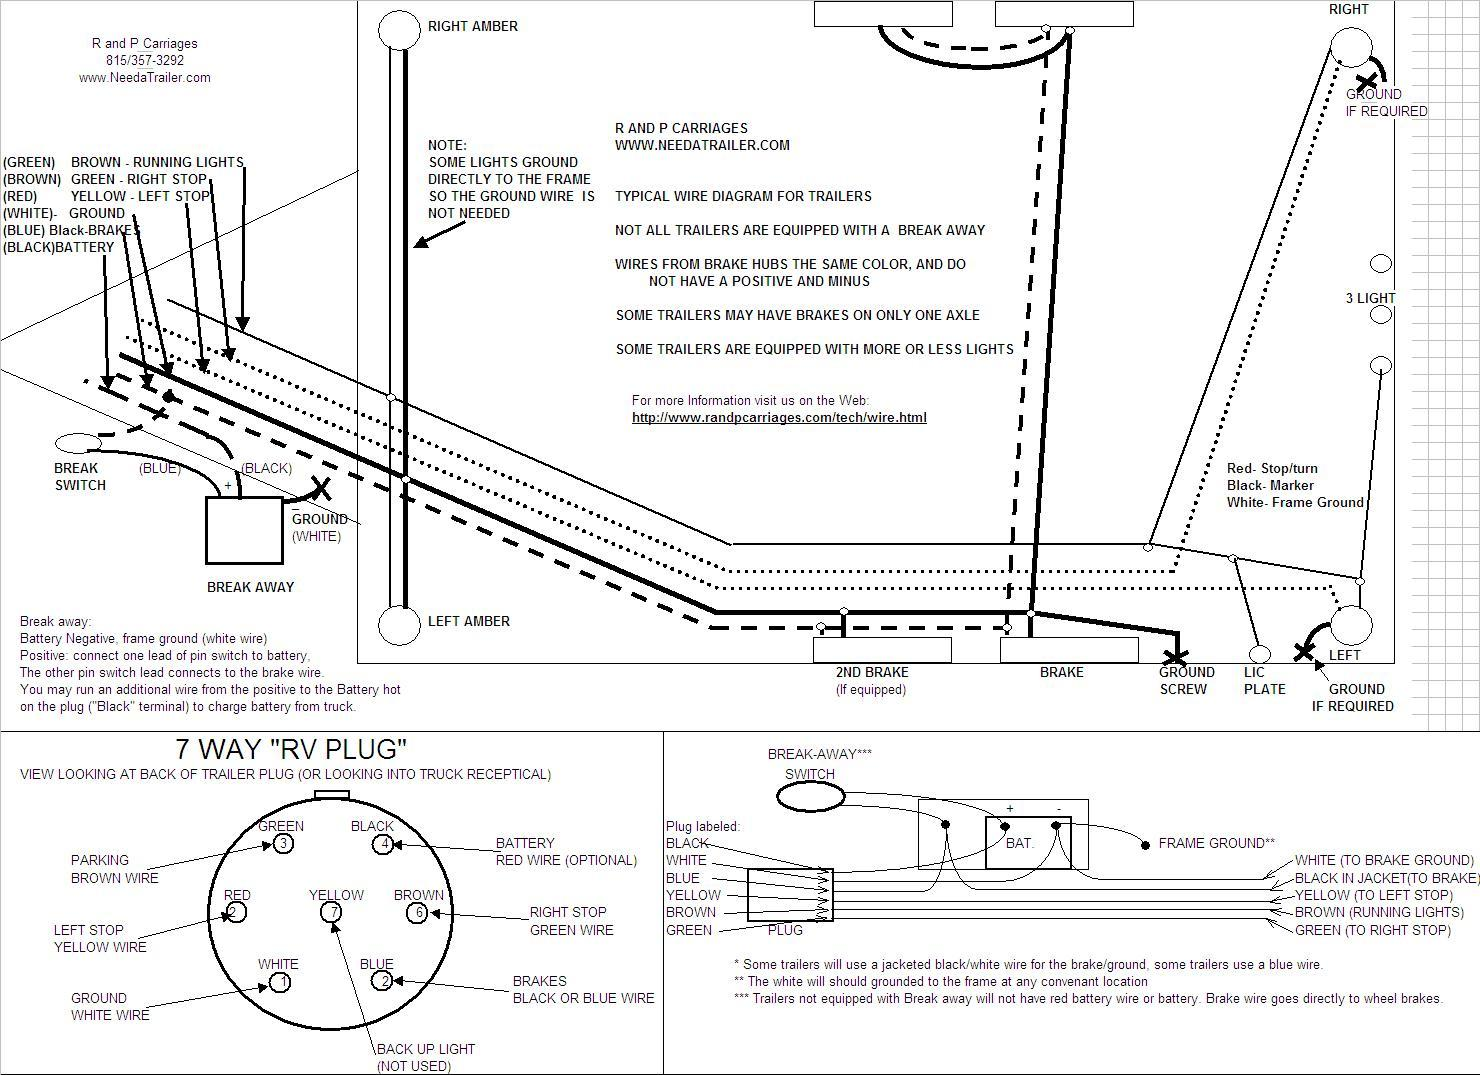 wiring diagrams for trailers 7 wire y plan diagram honeywell brake controller installation instructions